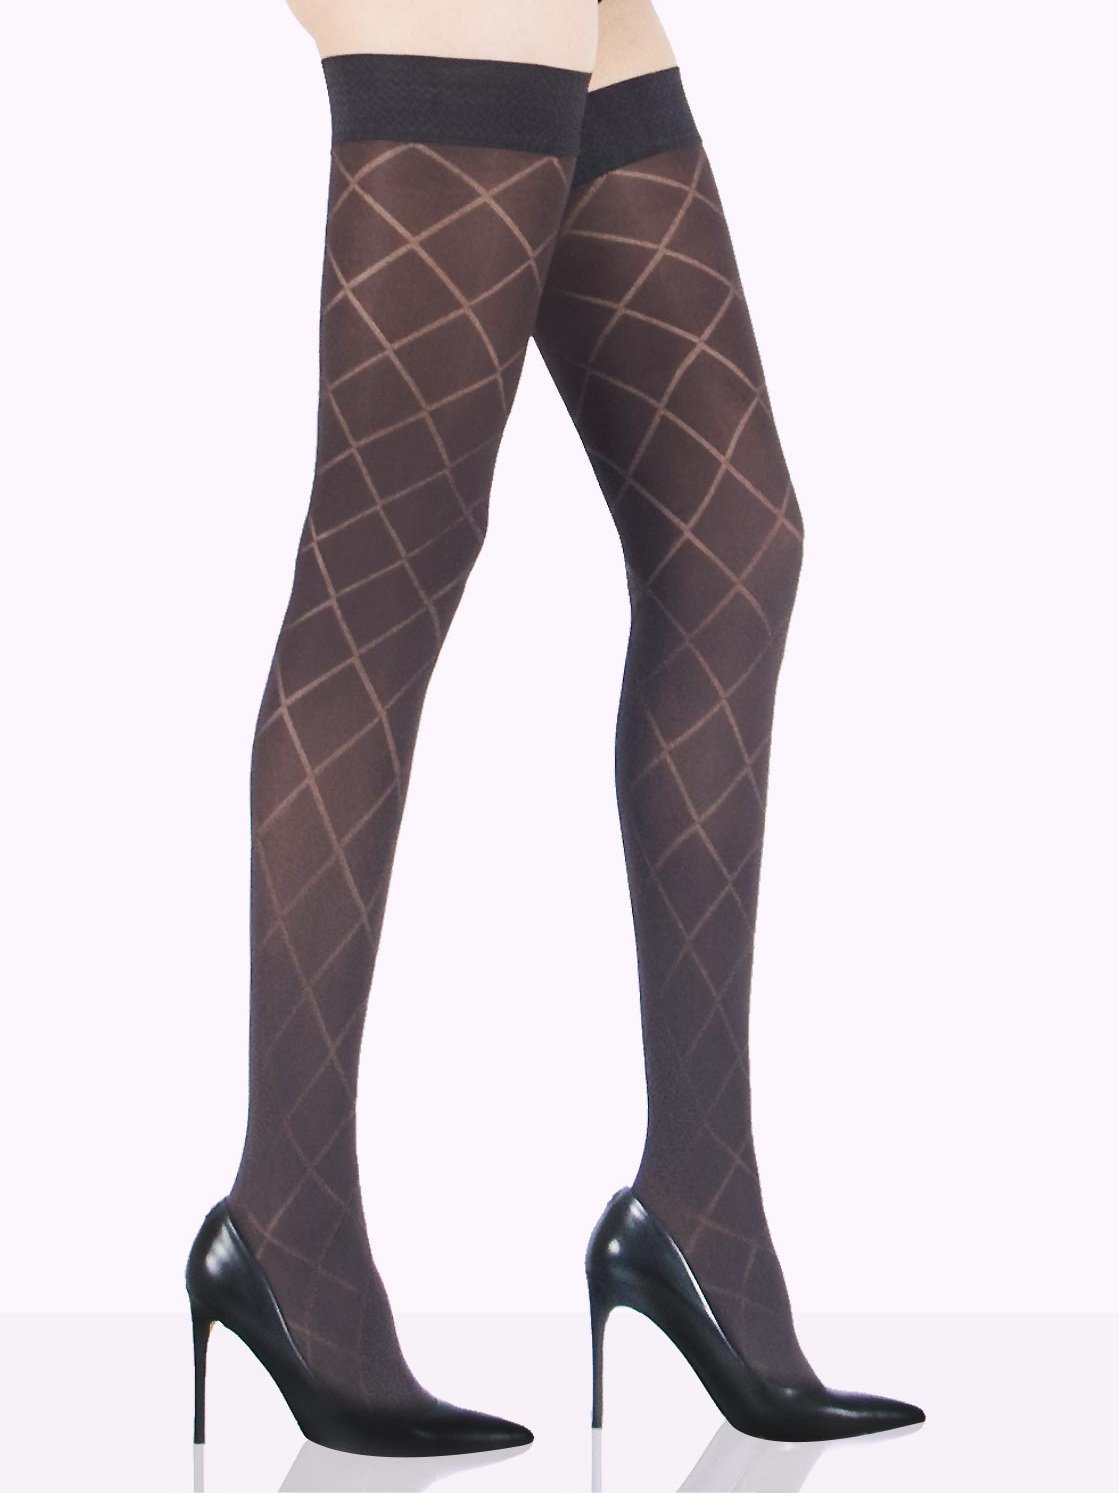 MAFALDA stockings